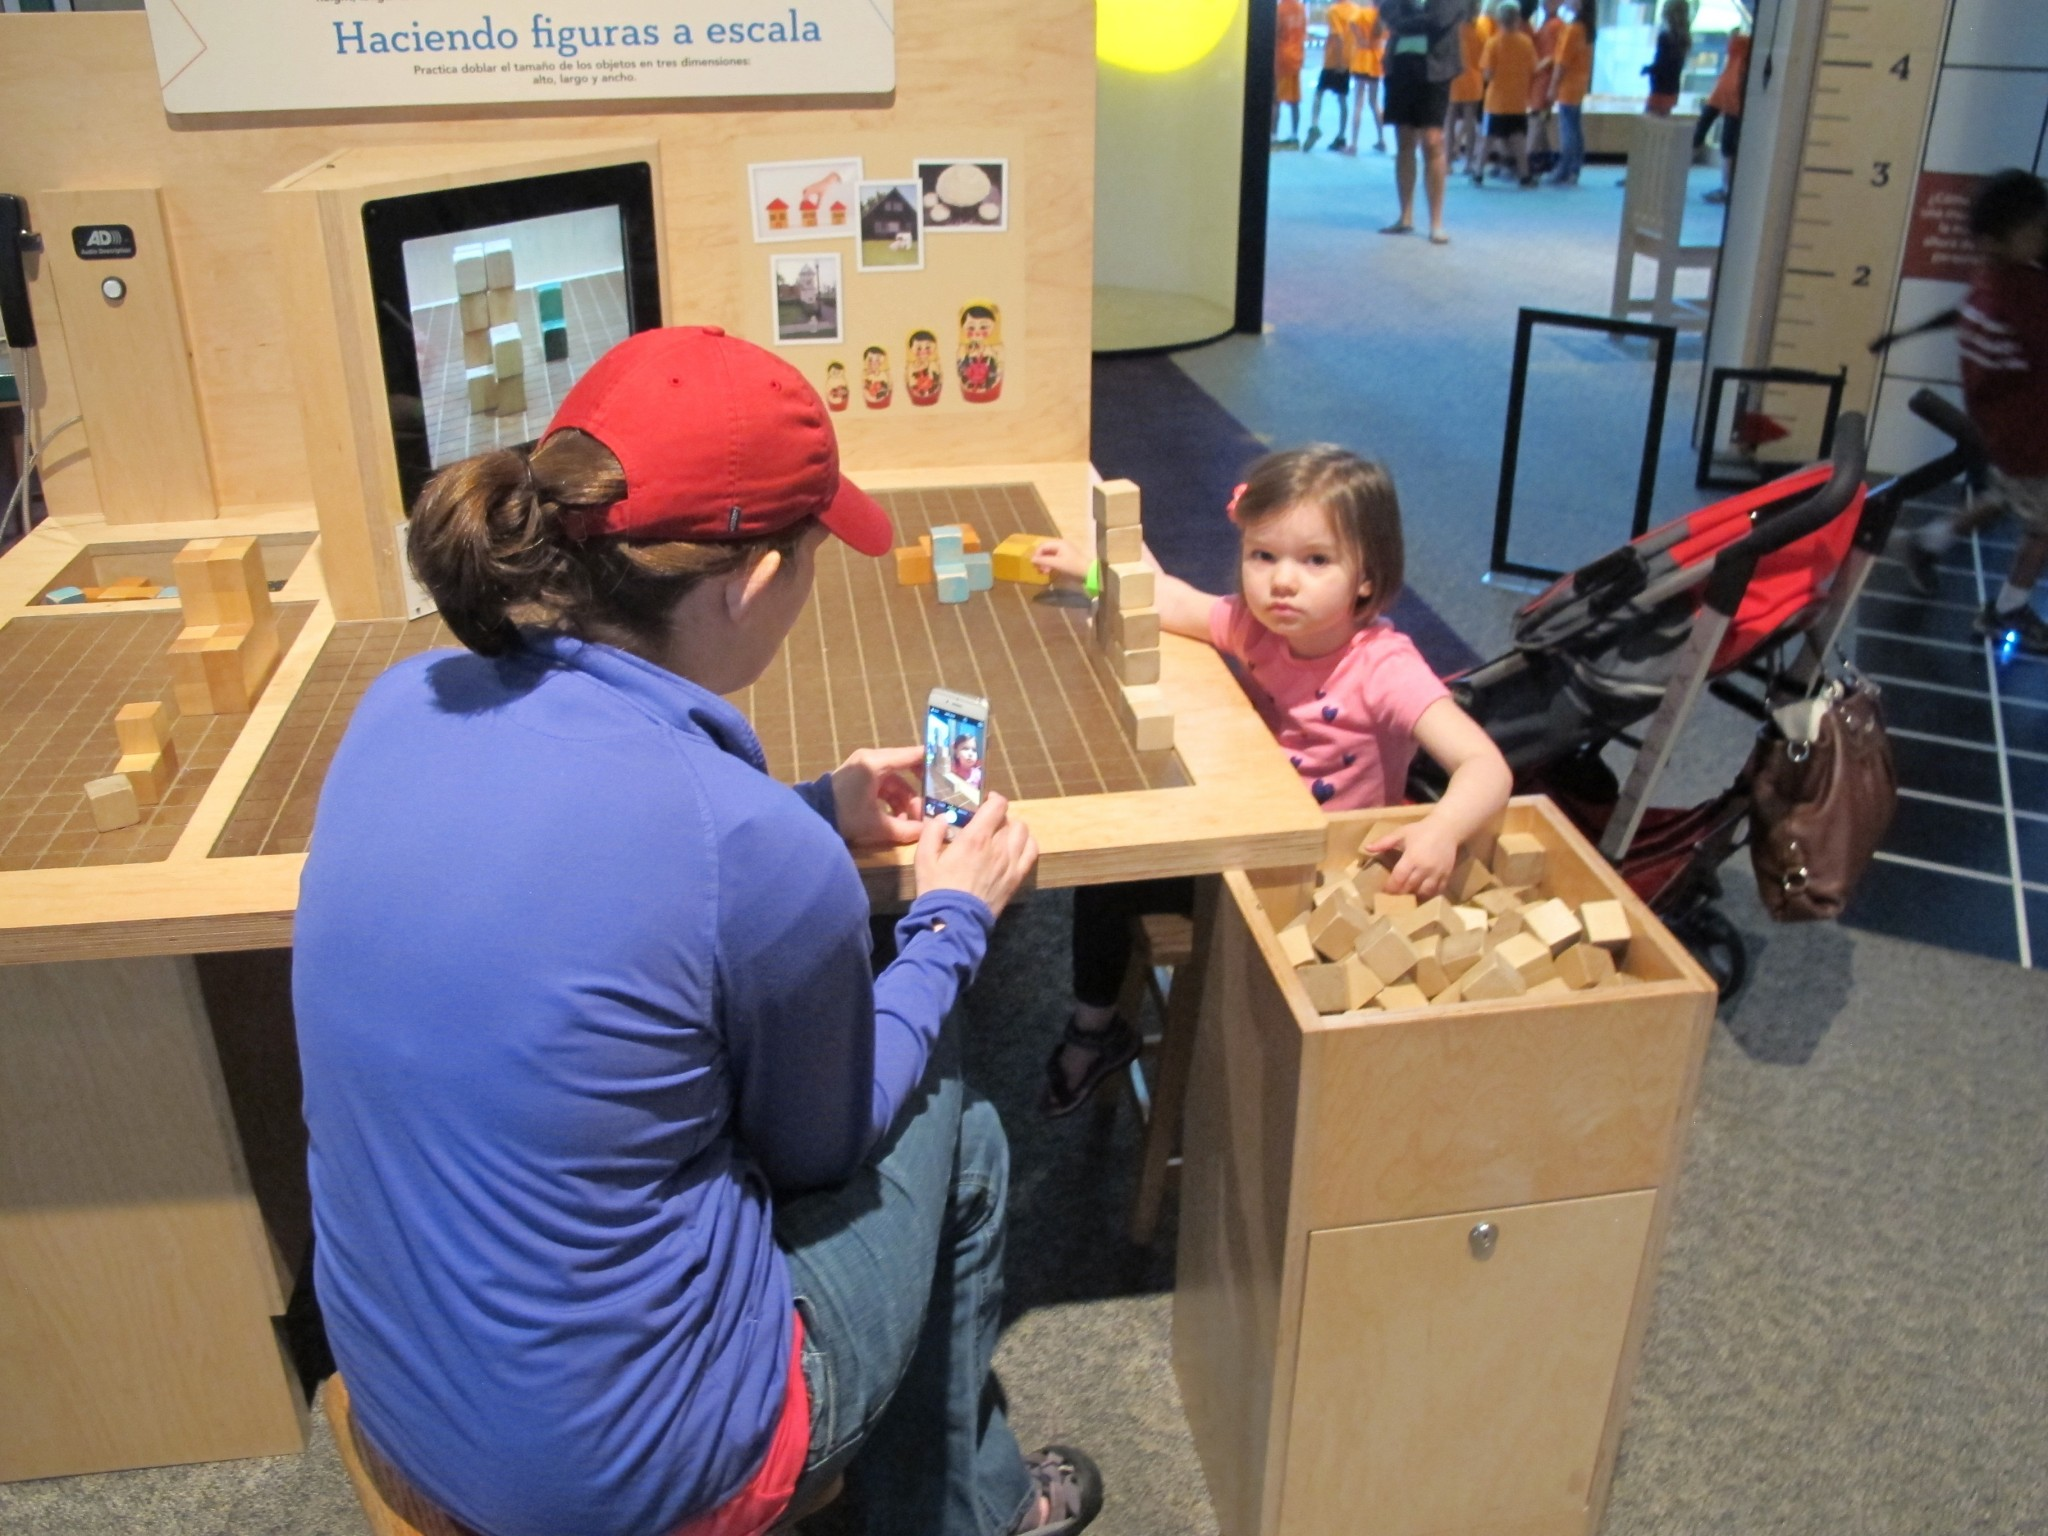 """Imagination Station's new exhibit, """"Math Moves,"""" features a variety of hands-on activities to make experimenting with concepts at the heart of math challenging and fun for kids and adults. (Photo courtesy of Imagination Station)"""